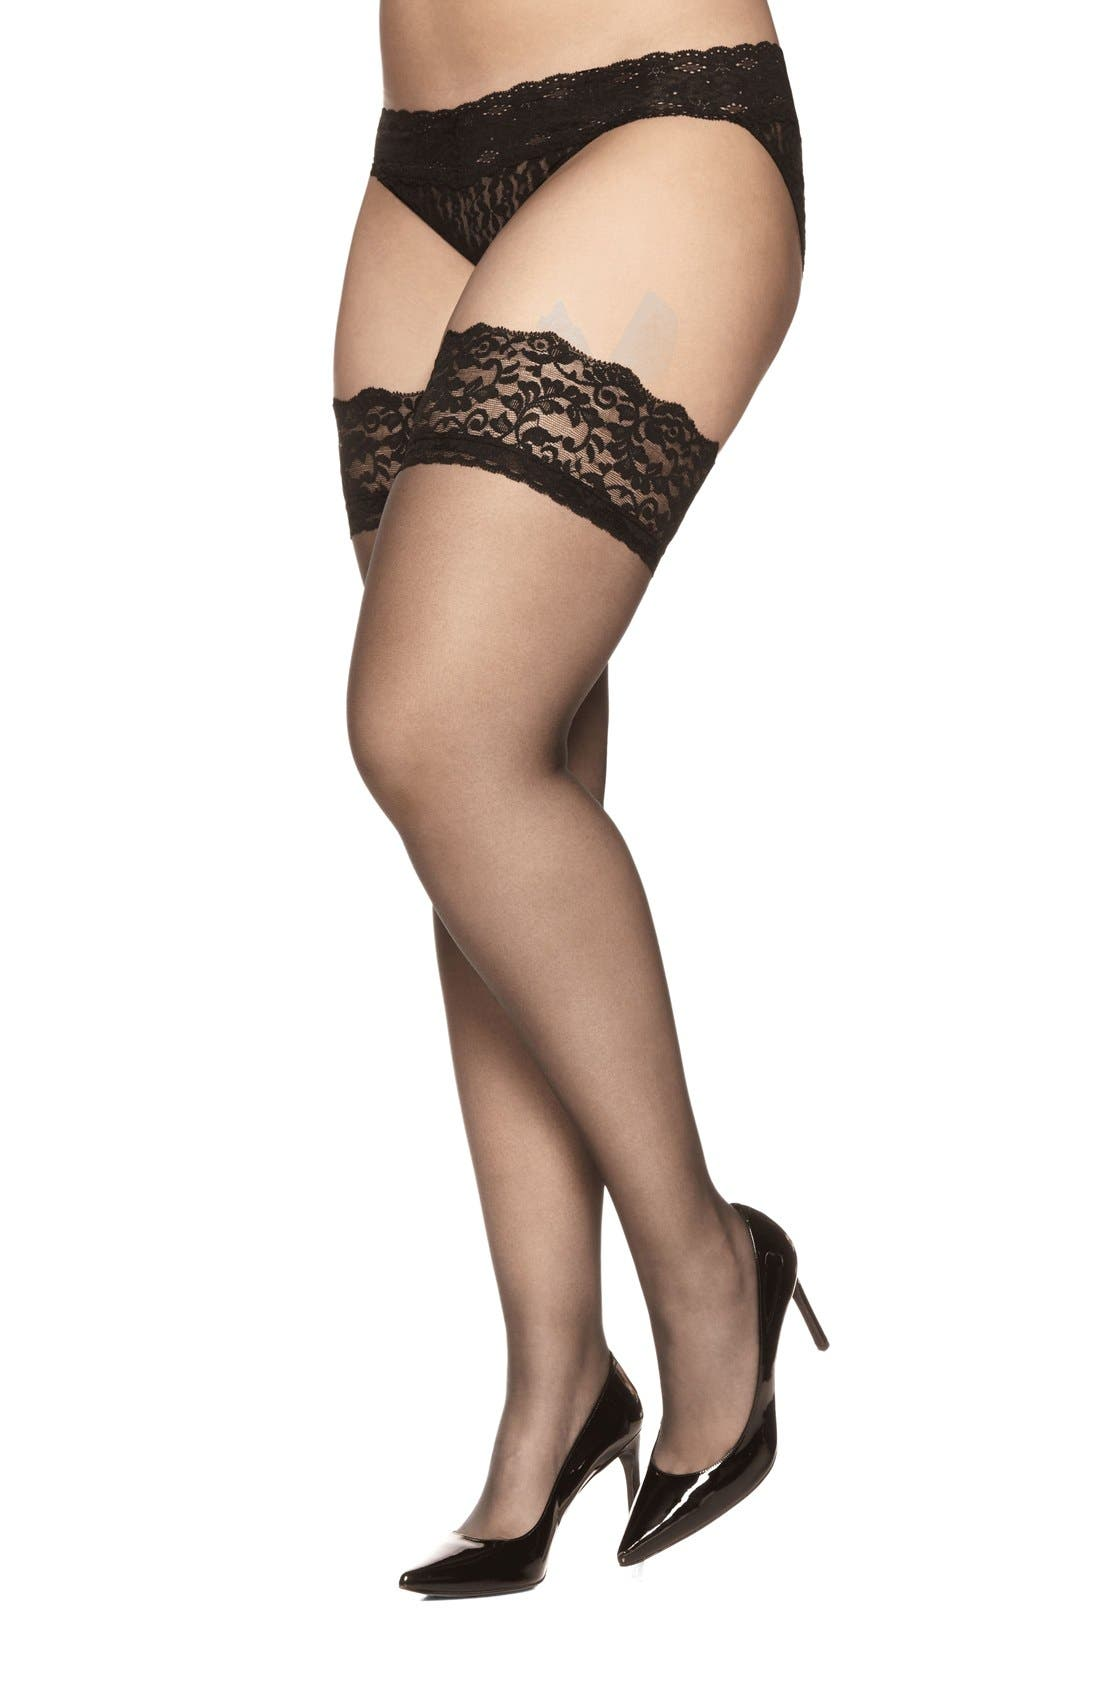 Stay-Up Stockings,                         Main,                         color, FANTASY BLACK